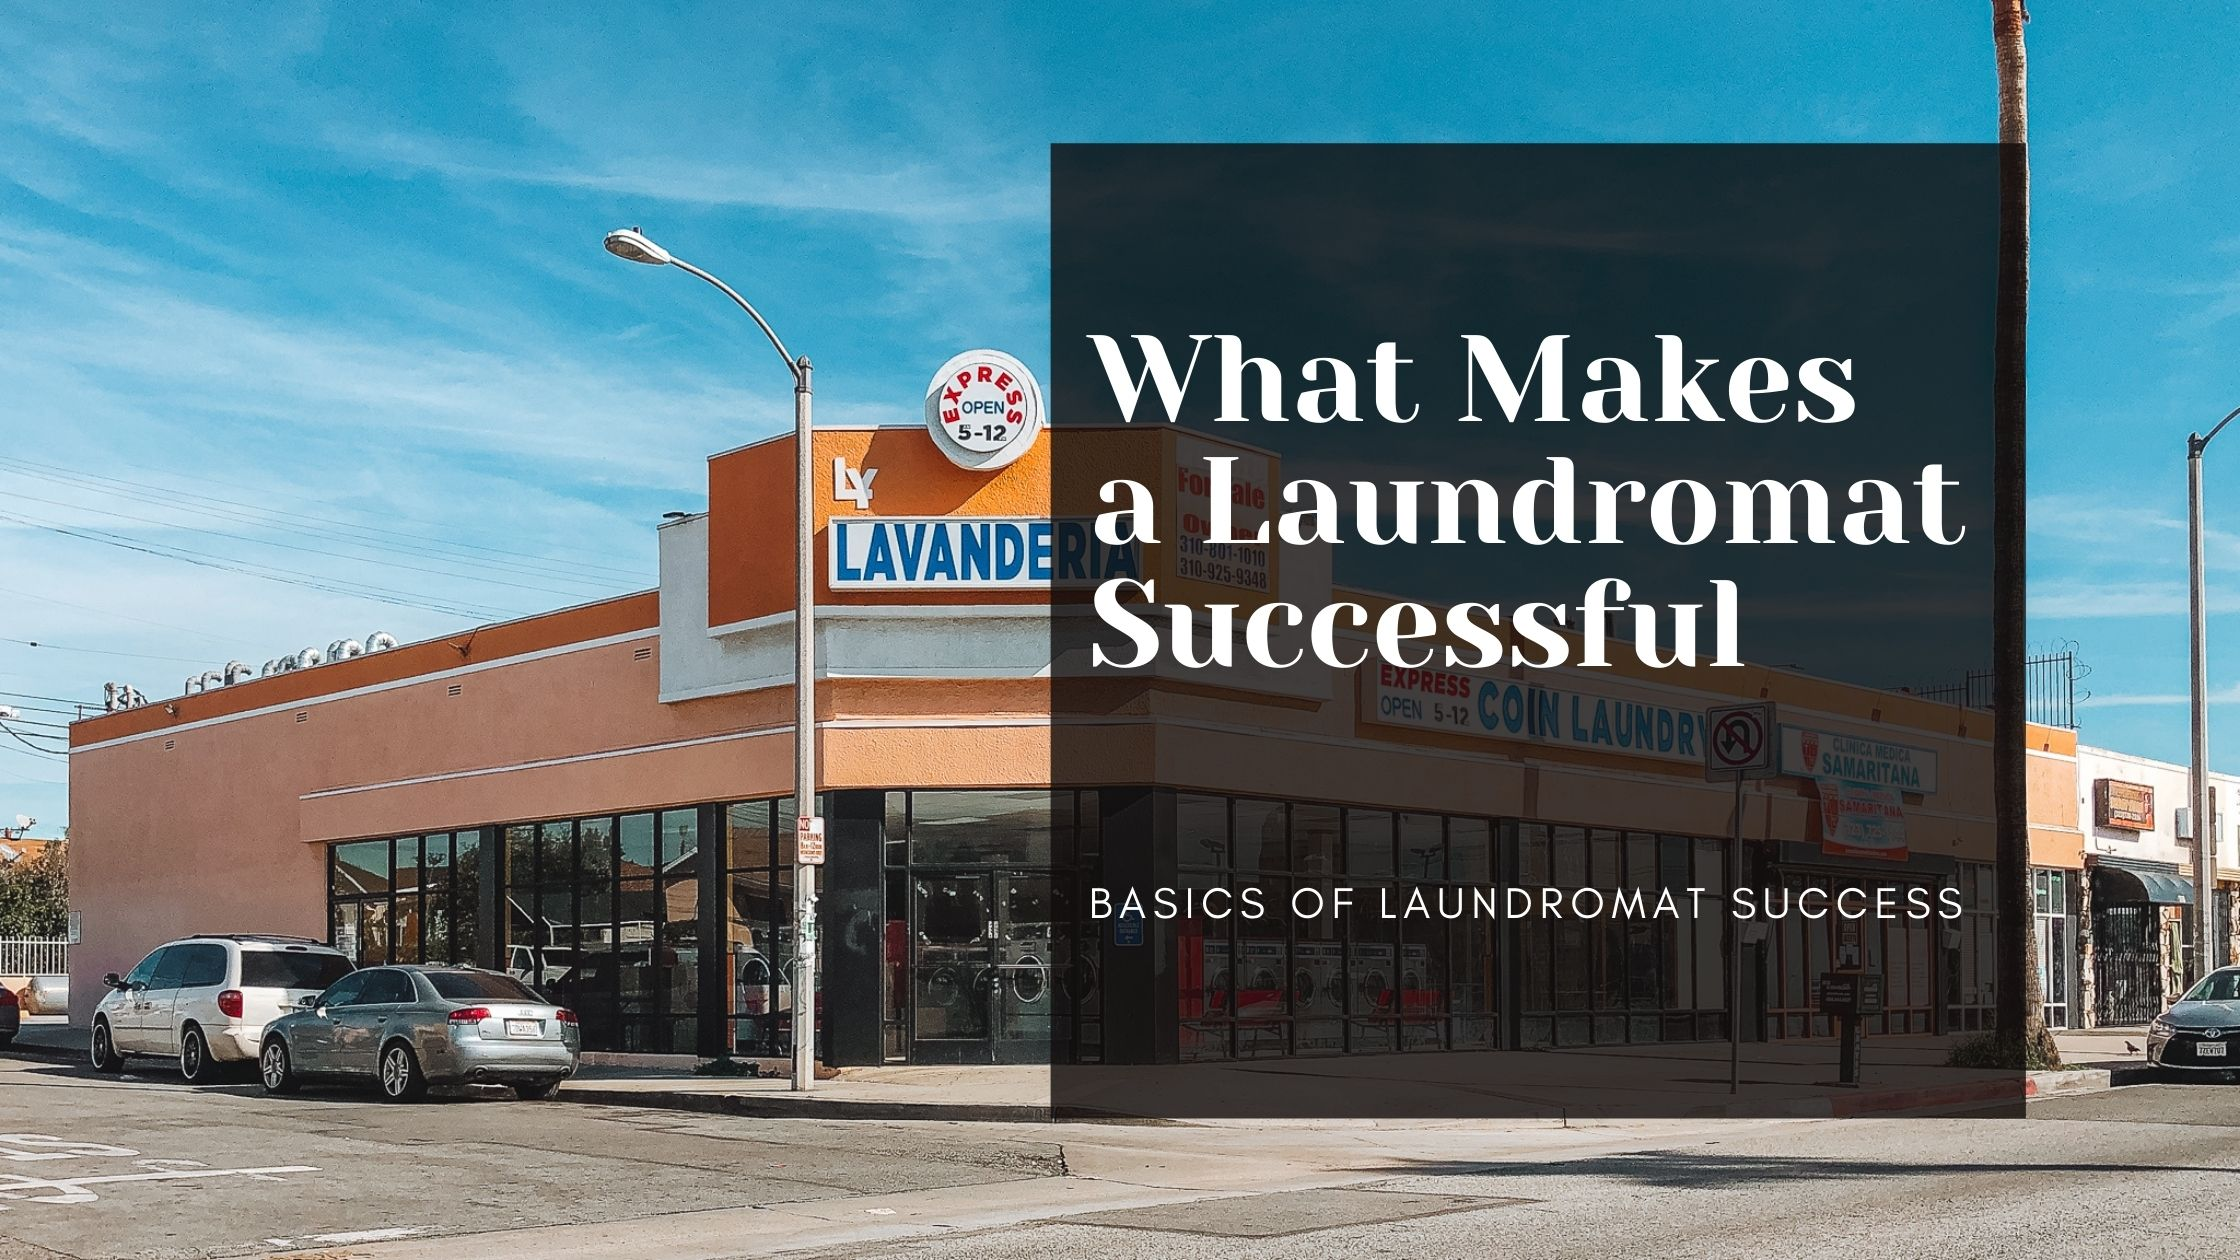 What Makes a Laundromat Successful